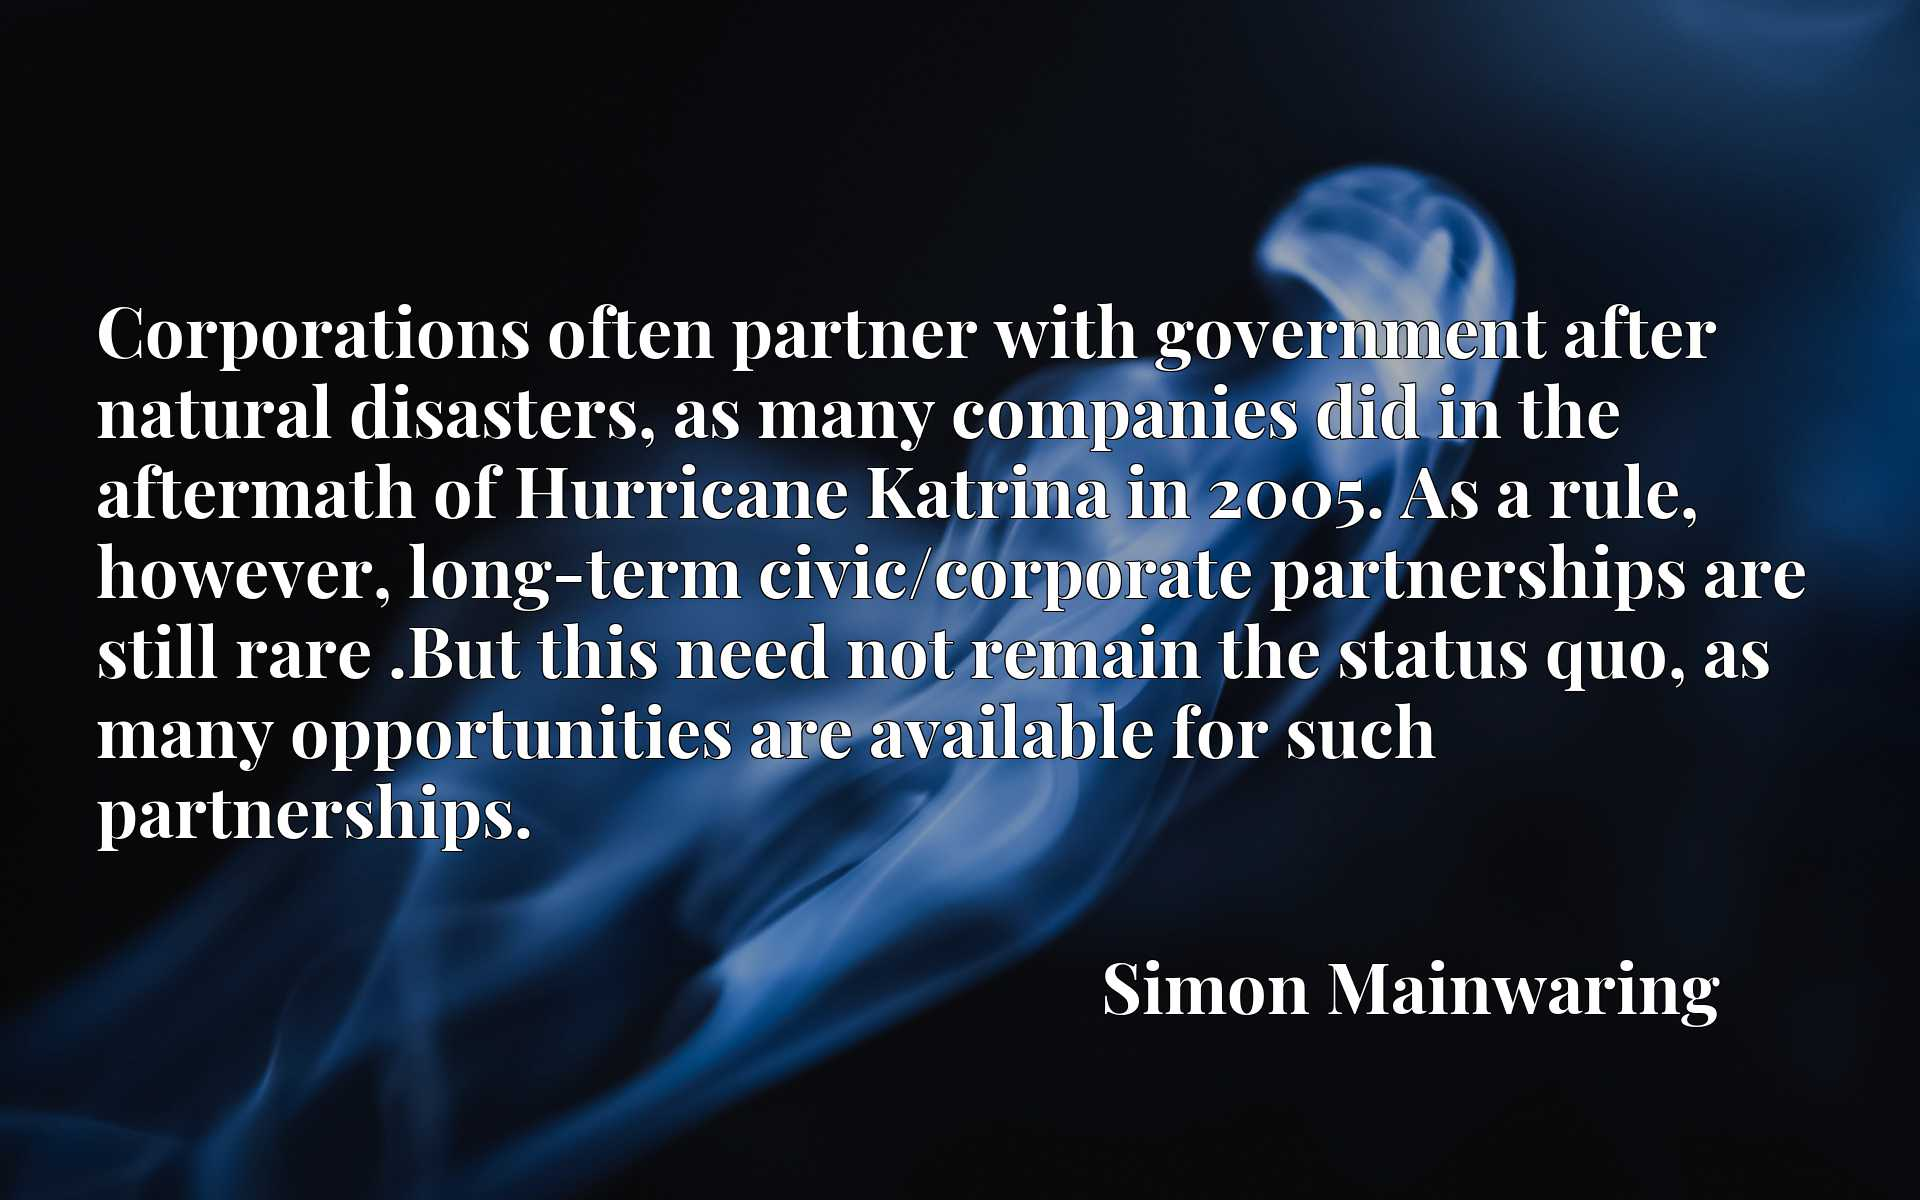 Corporations often partner with government after natural disasters, as many companies did in the aftermath of Hurricane Katrina in 2005. As a rule, however, long-term civic/corporate partnerships are still rare .But this need not remain the status quo, as many opportunities are available for such partnerships.